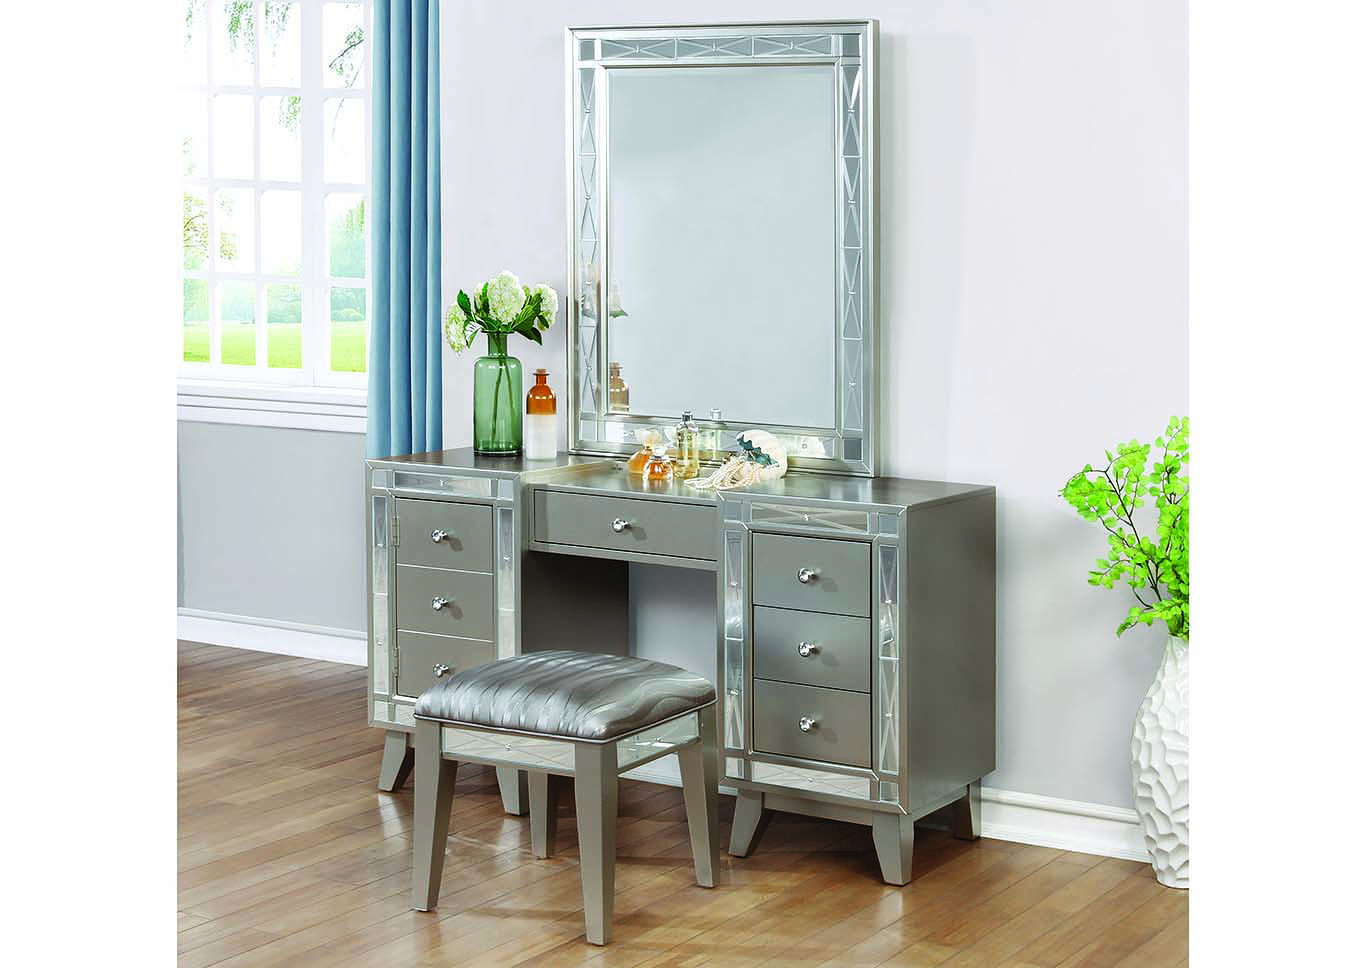 Great Brothers Fine Furniture Leighton Metallic Mercury Vanity Desk, Stool And  Mirror